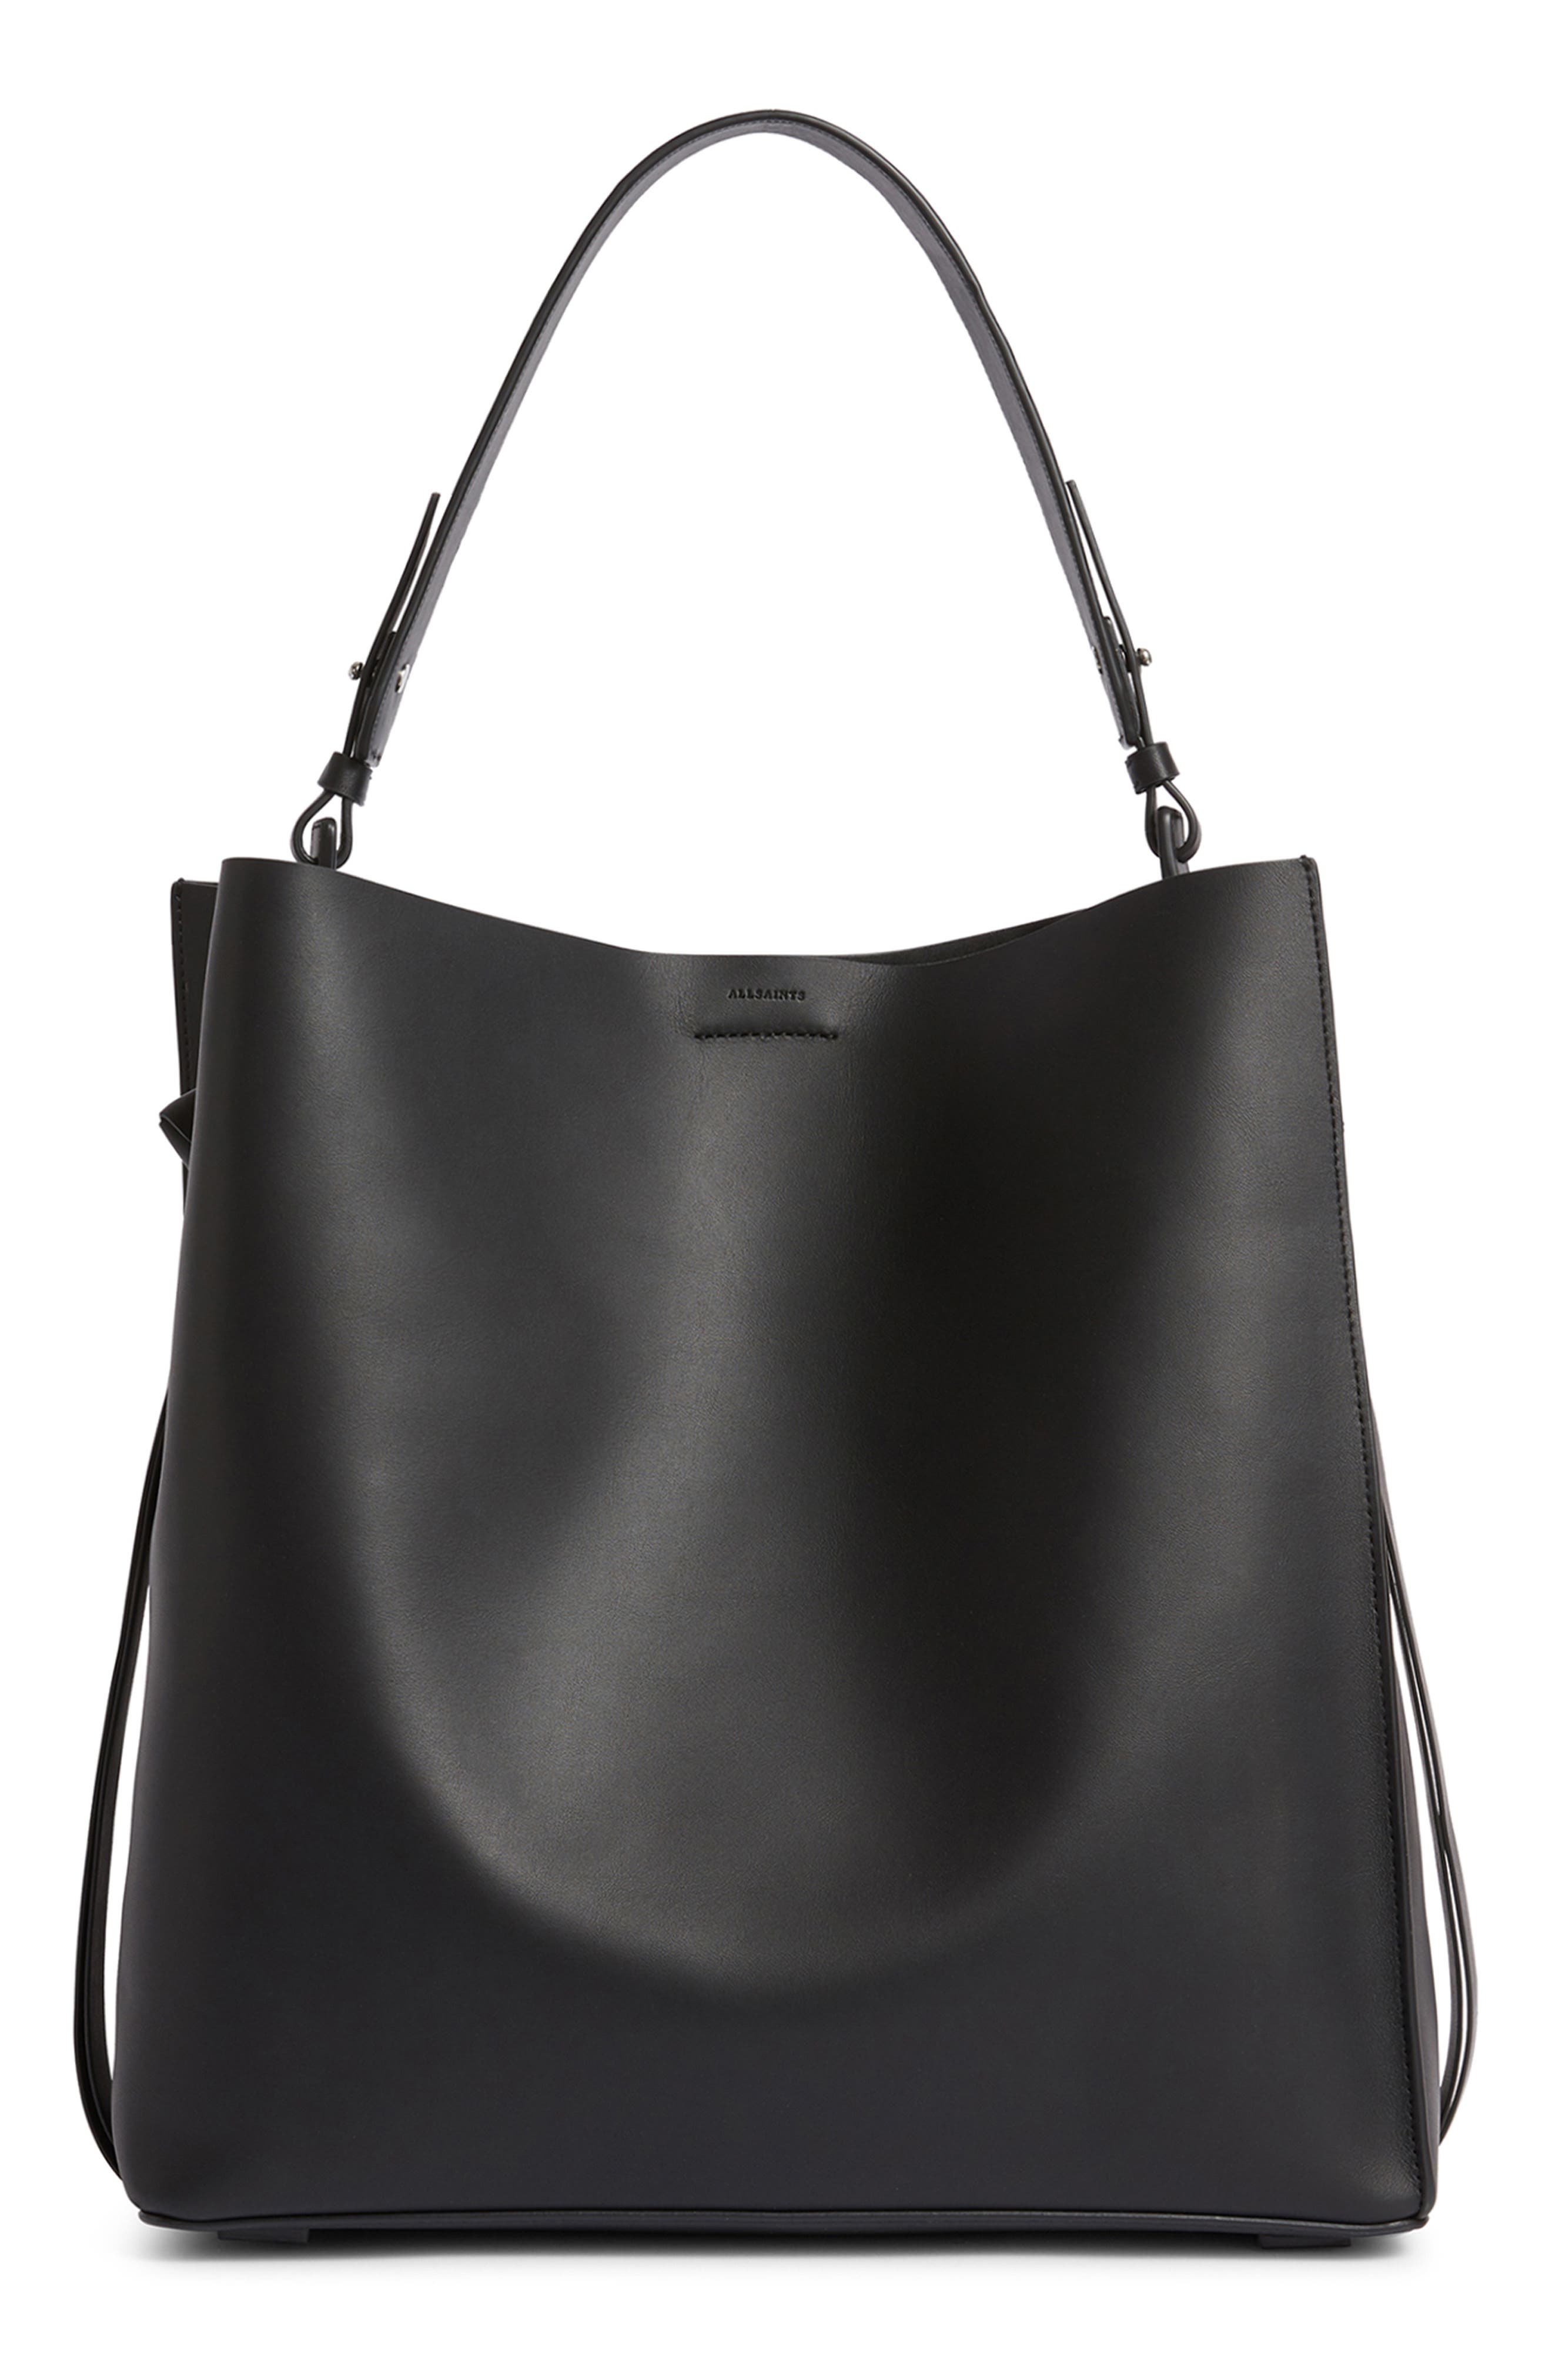 ALLSAINTS Voltaire North/South Leather Tote - Black